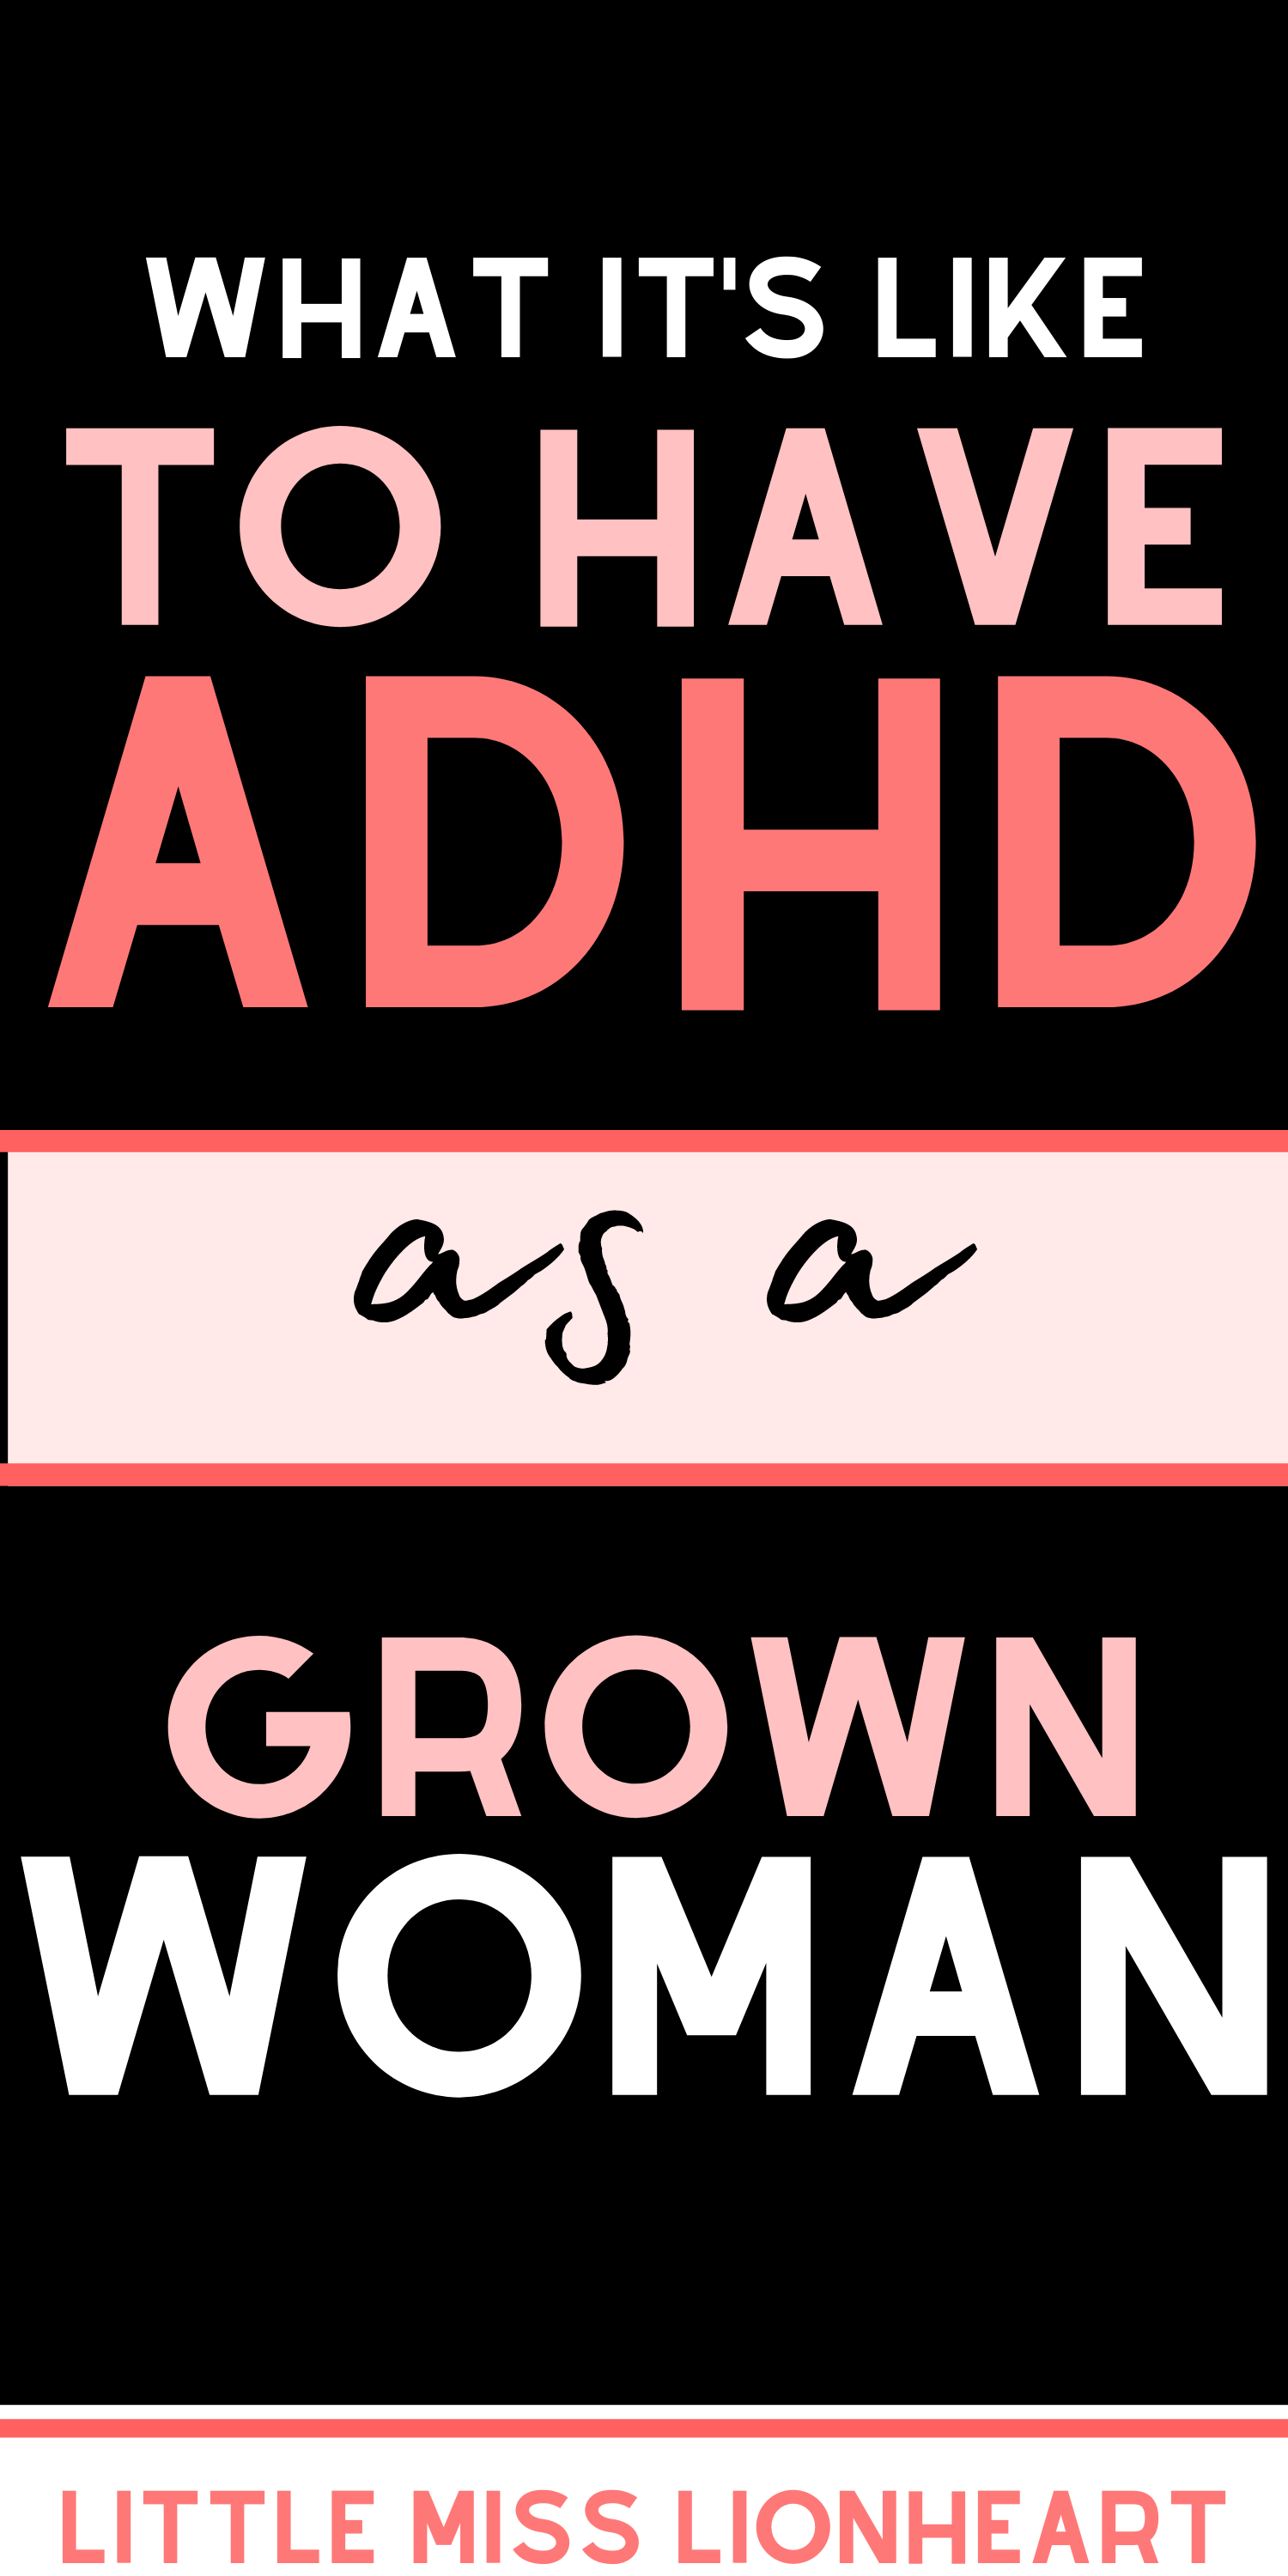 Signs of ADHD in Women